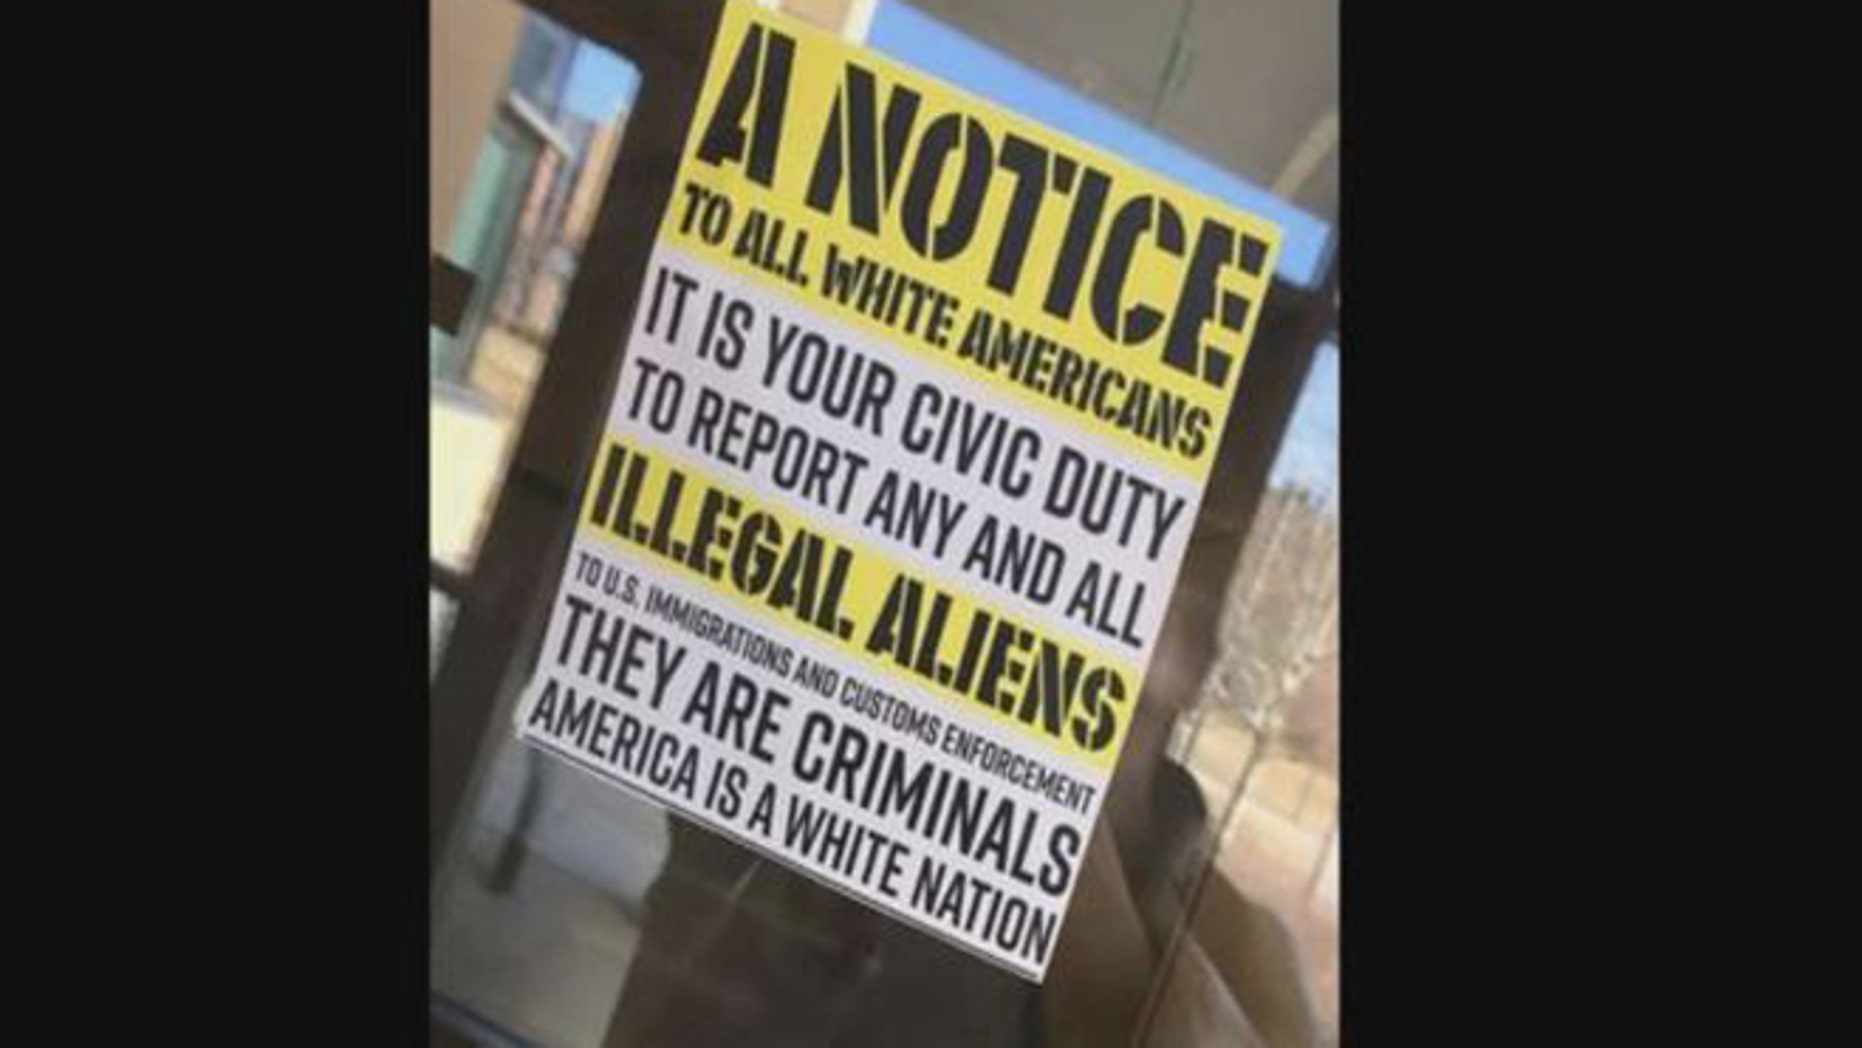 This racist flier sparked an angry response on the campus of Gustavus Adolphus College in Minnesota.